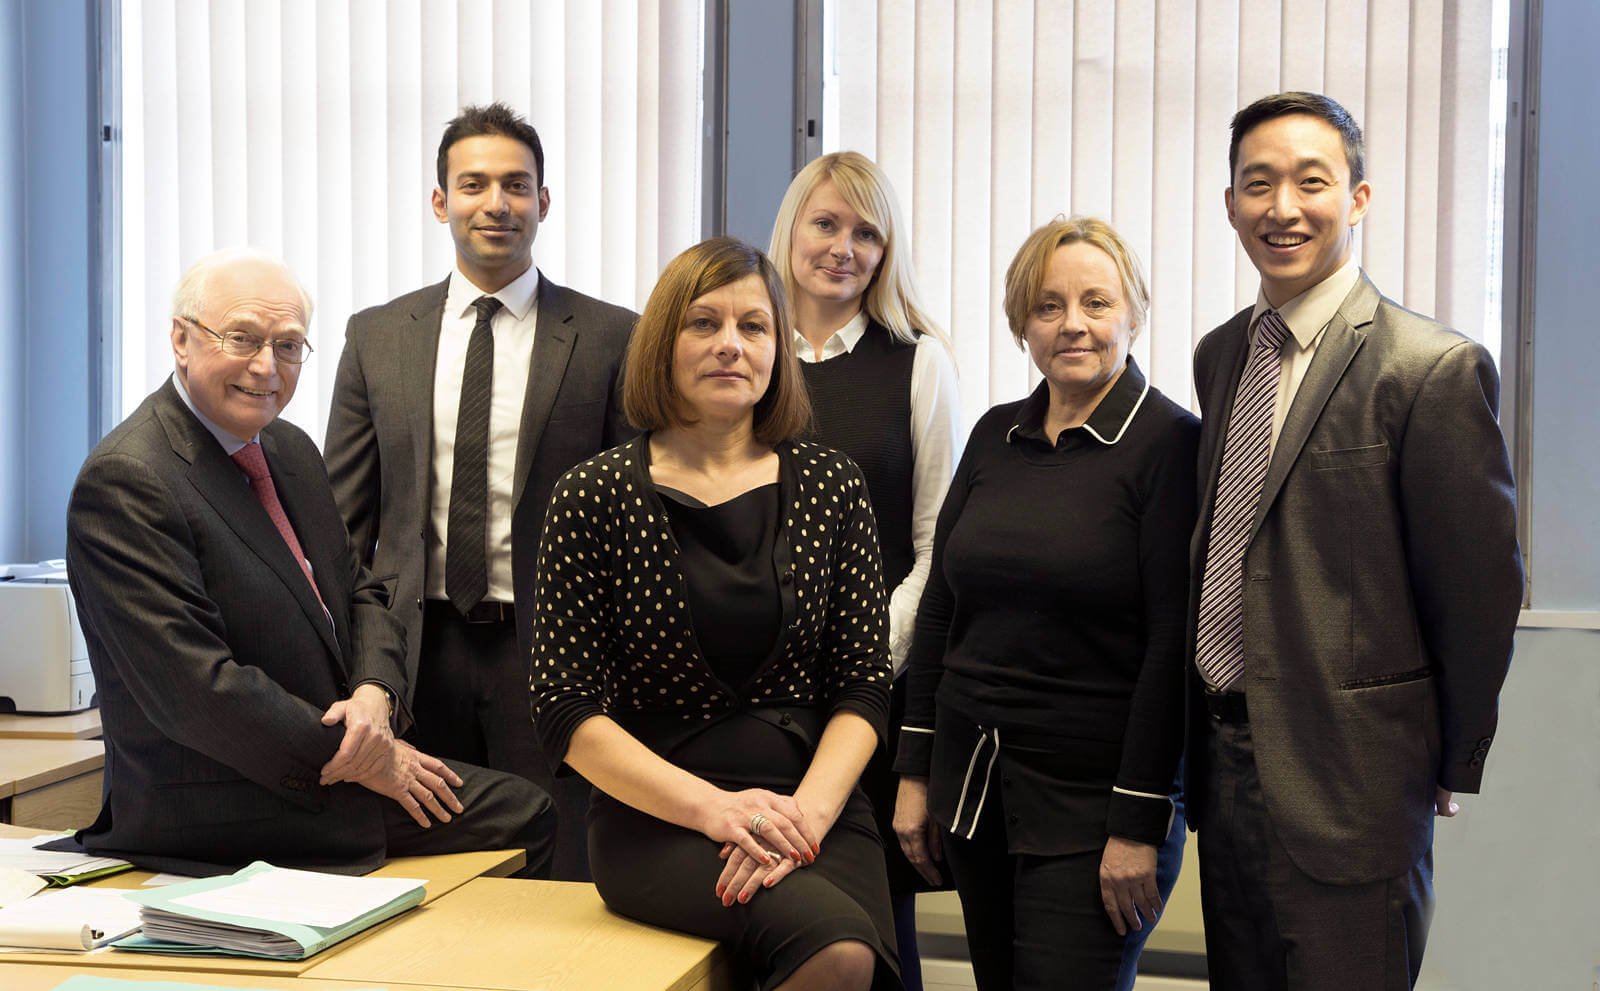 accountants Bexleyheath, Hammonds Chartered Accountants